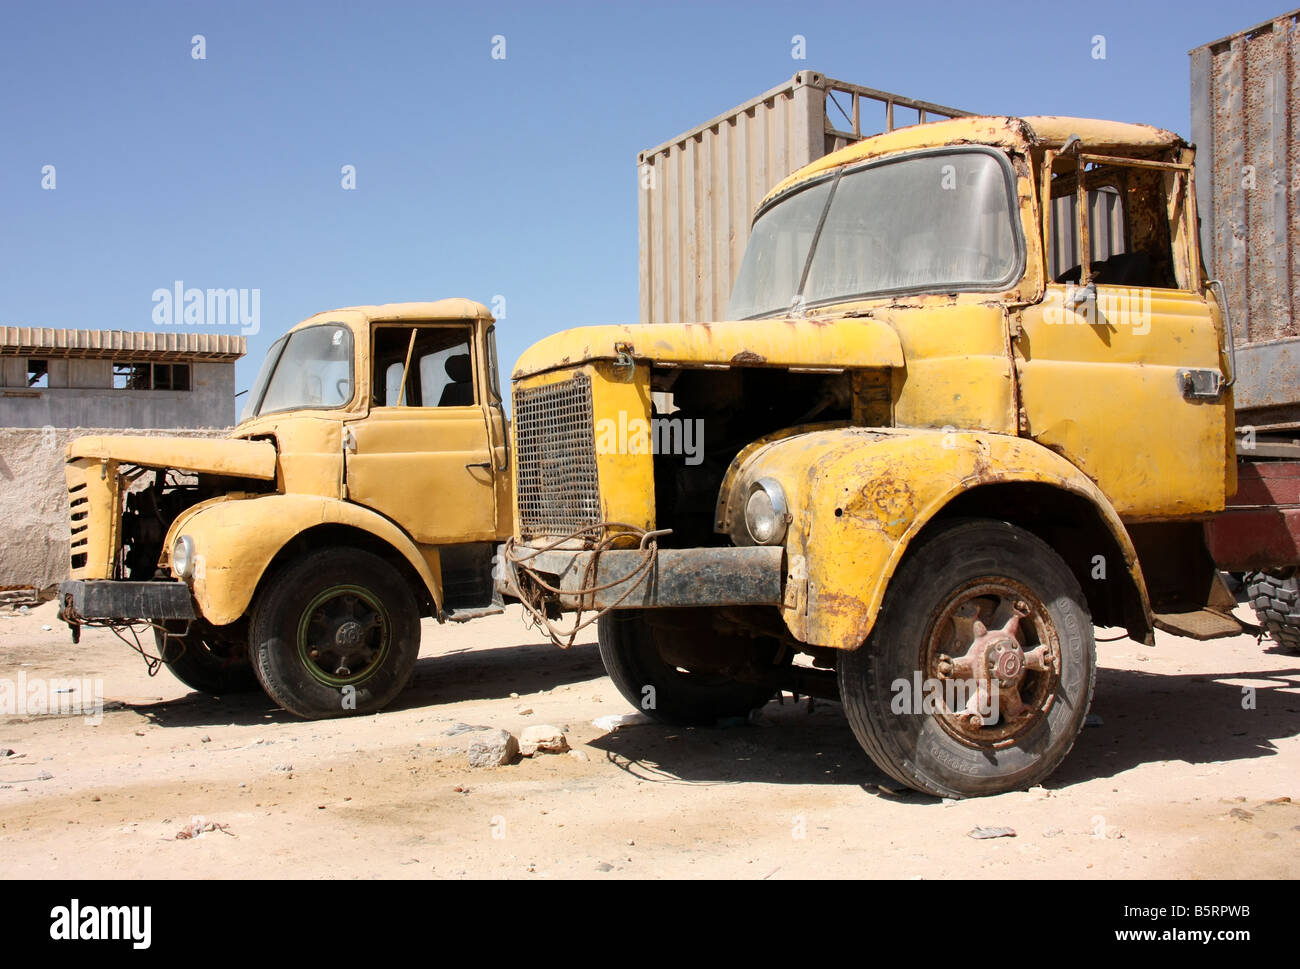 Battered French made trucks in Nouadhibou Mauritania Western Sahara - Stock Image